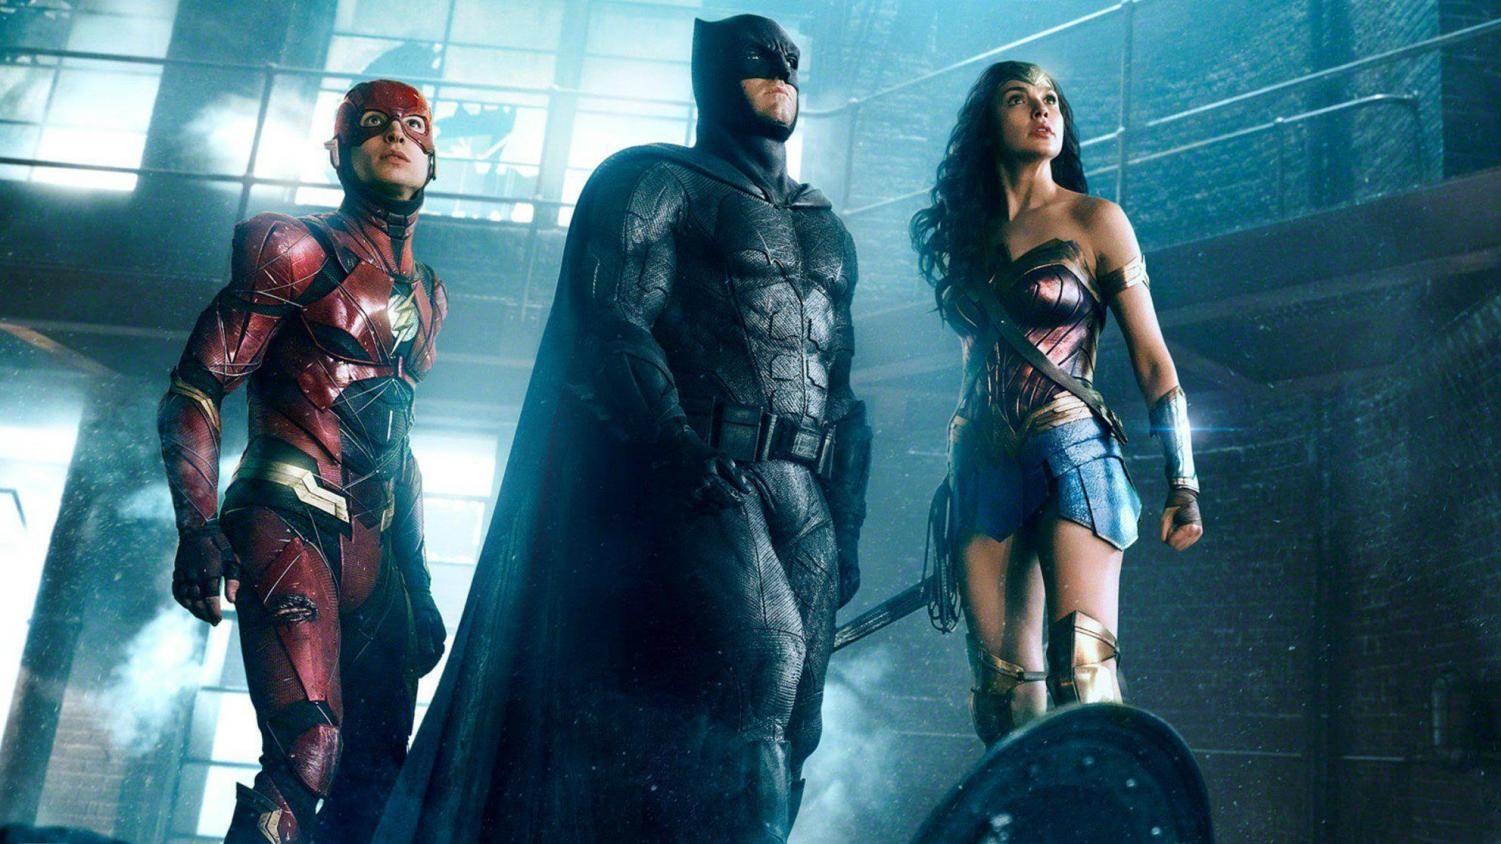 The Flash (Ezra Miller), Batman (Ben Affleck), and Wonderwoman (Gal Gadot) stand ready to battle Steppenwolf. (Photo courtesy DC Films)